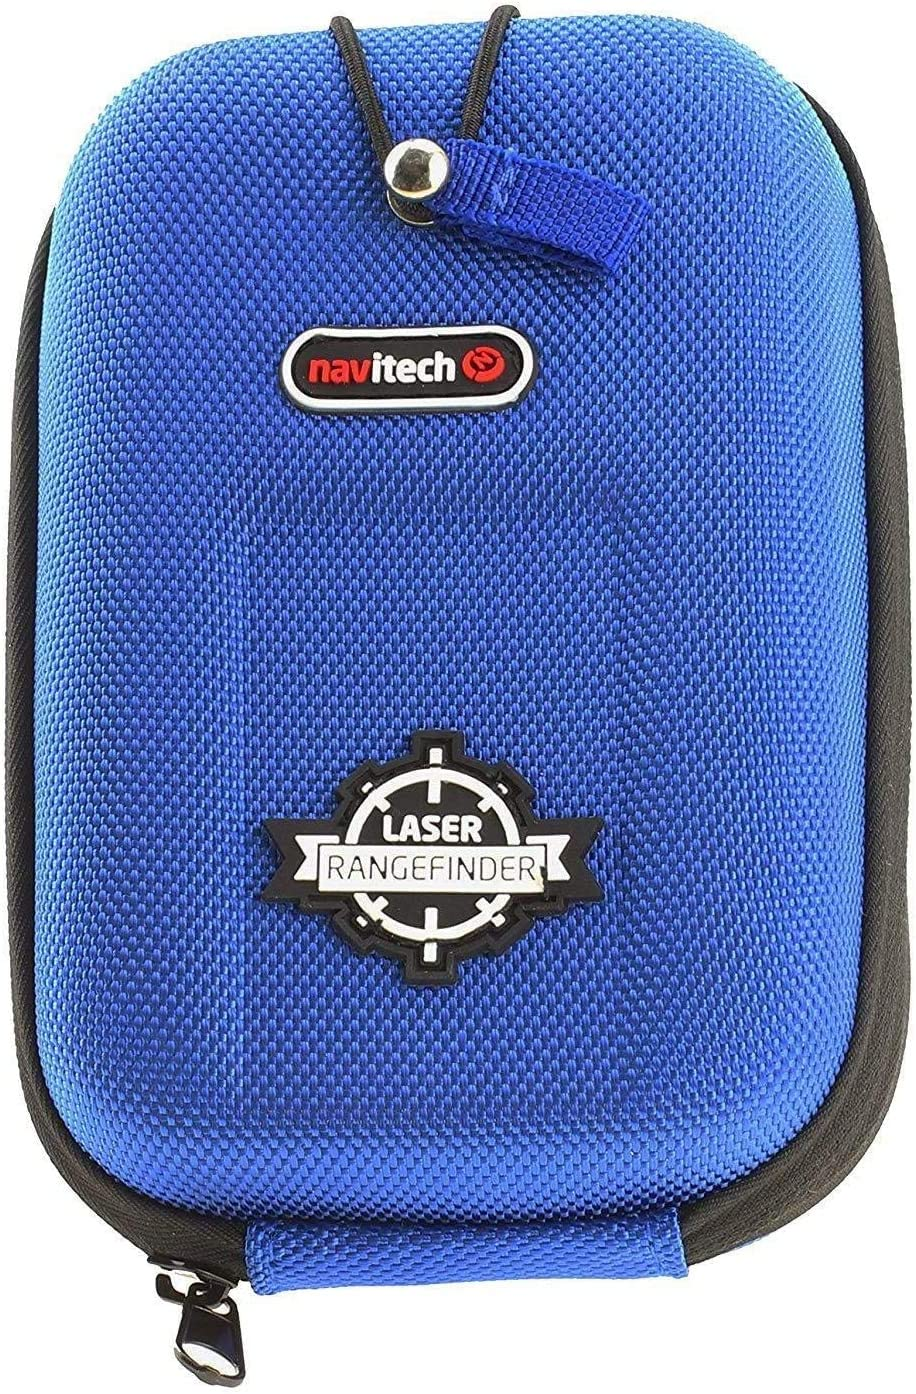 Navitech Blue Max 54% OFF EVA Hard Case Compatible Rangefinder with Bo Cover Sale Special Price